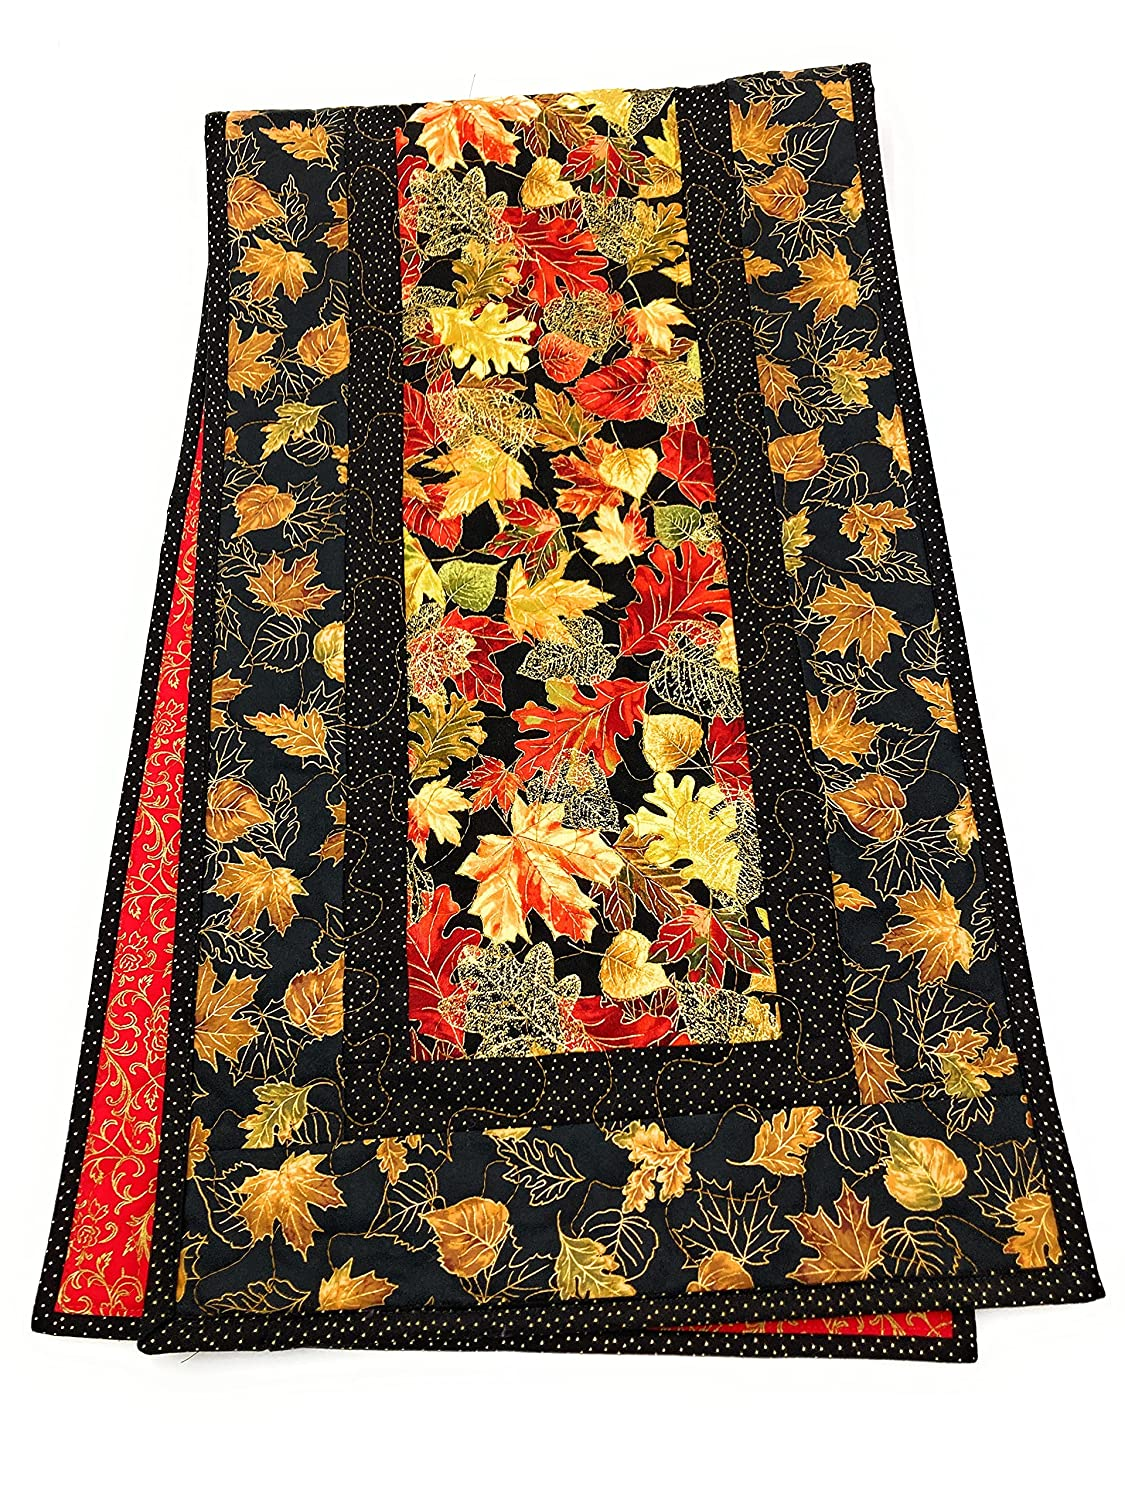 Table Runner with Leaves Golden Ranking TOP2 Decor Clearance SALE! Limited time! Fall Vibrant Autumn